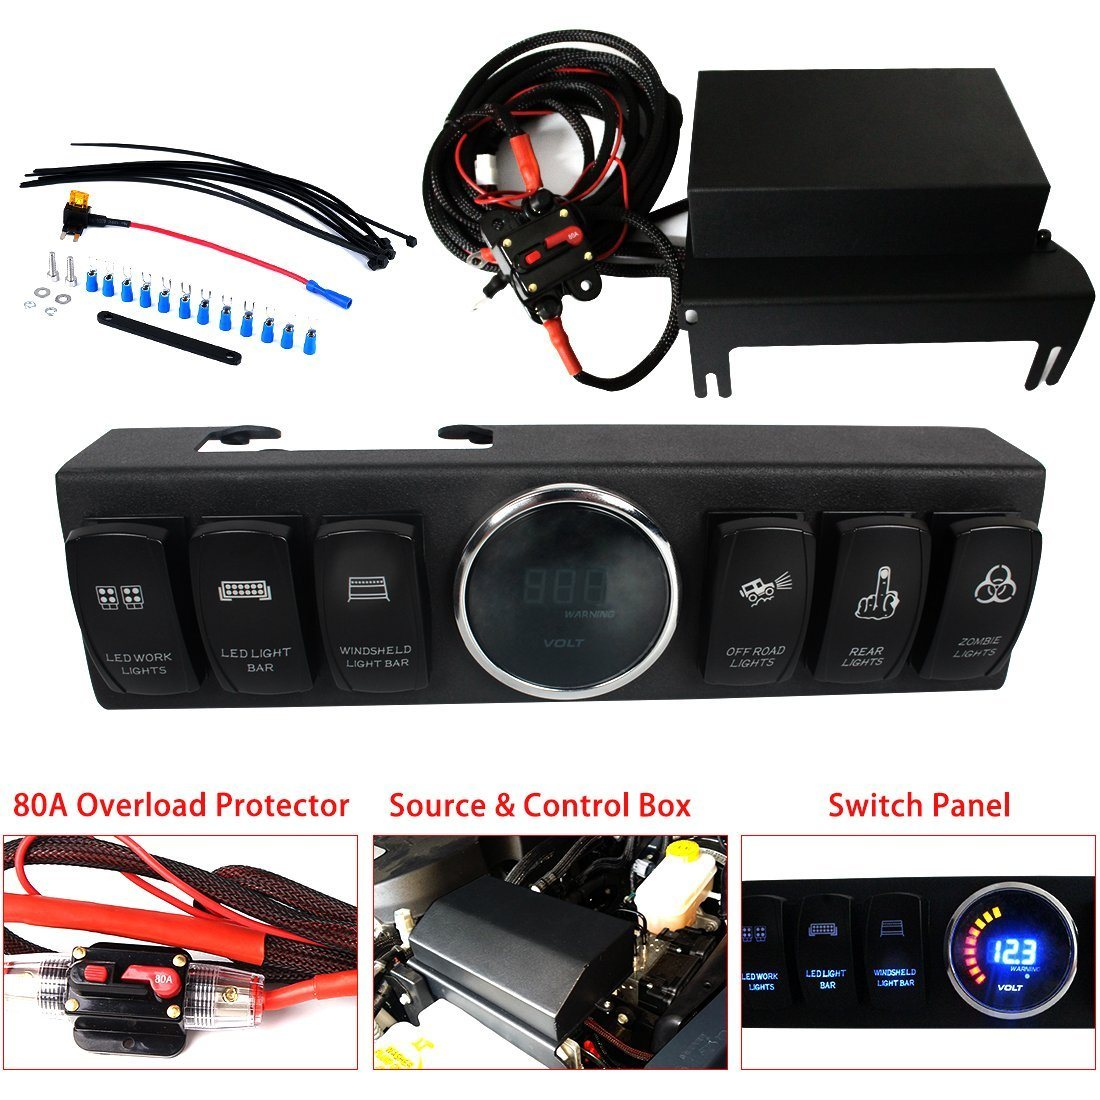 2009 2016 jeep wrangler jk jku control box 6 switch pod electronic more than 6ft of wiring 6 size 12 1 8 1 3 9 7 two sets of power connectors to light fixtures 8 weight 3 2lbs 9 package retail box